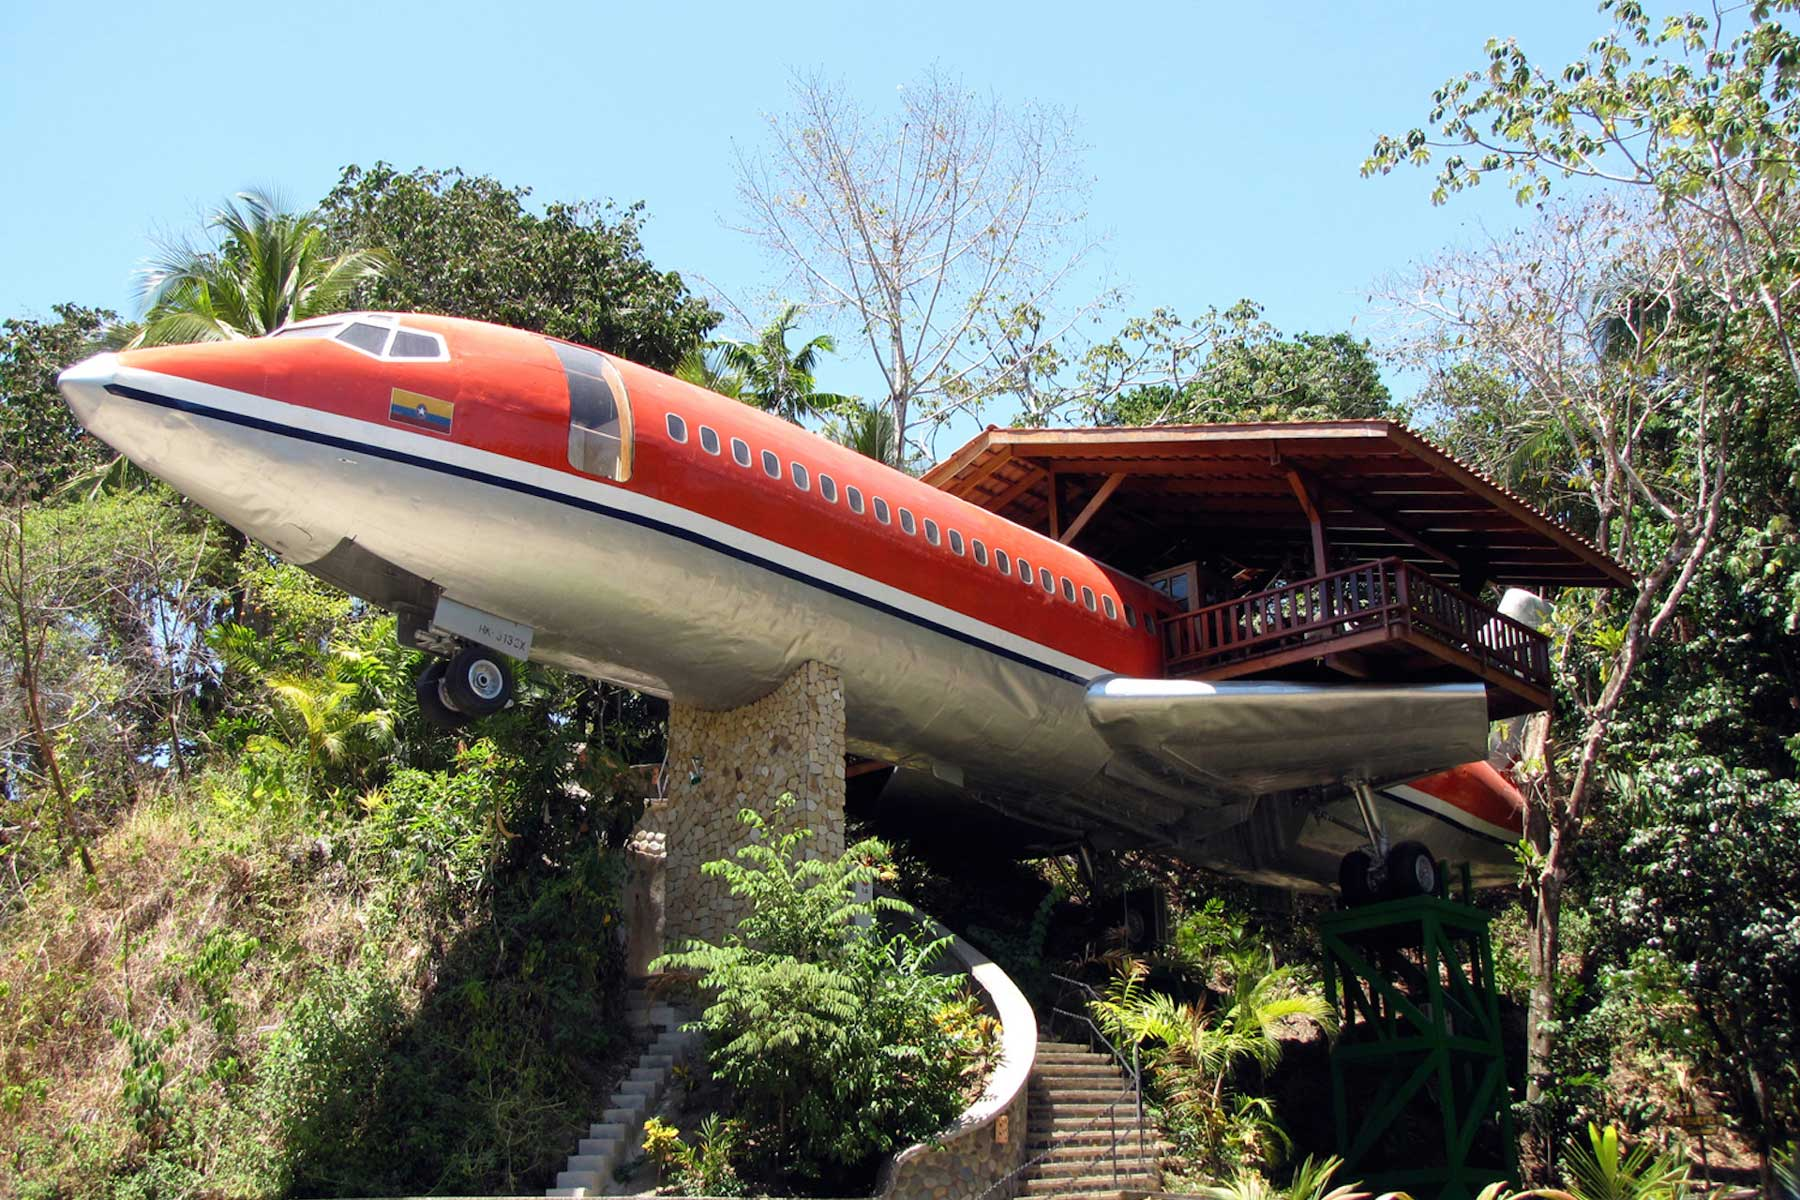 A 747 Airplane as a home you can rent